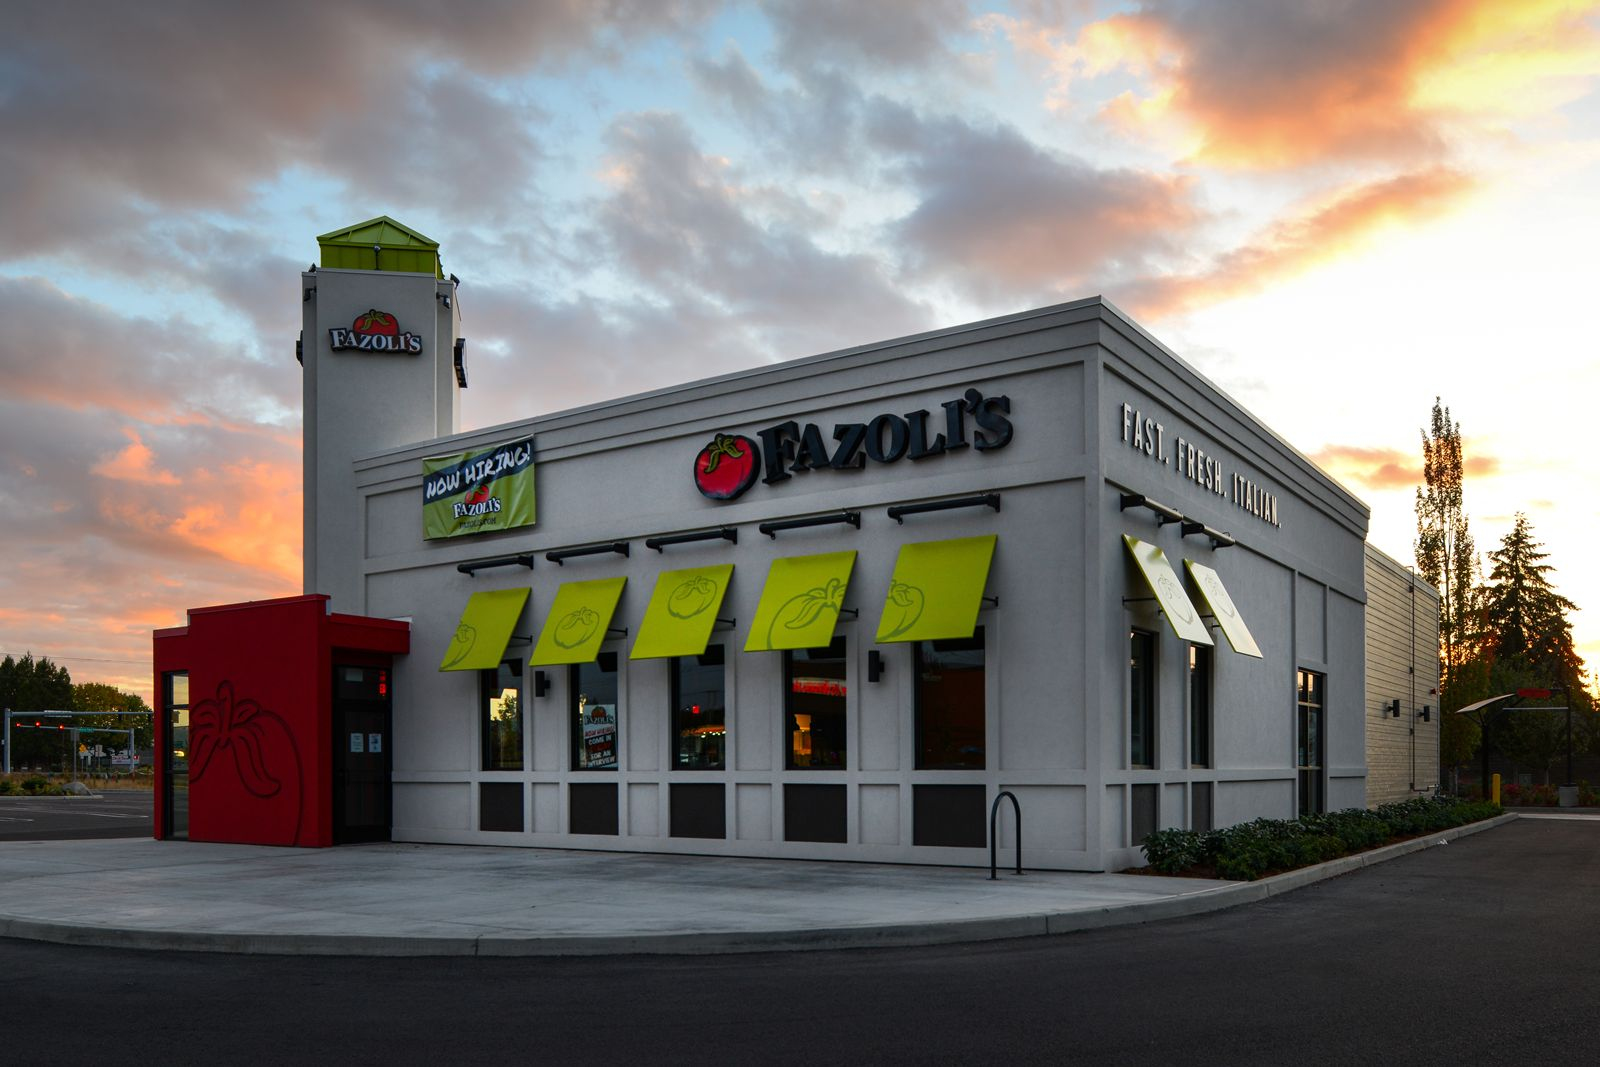 Fazolis New Restaurant Design Paves the Way for the Future